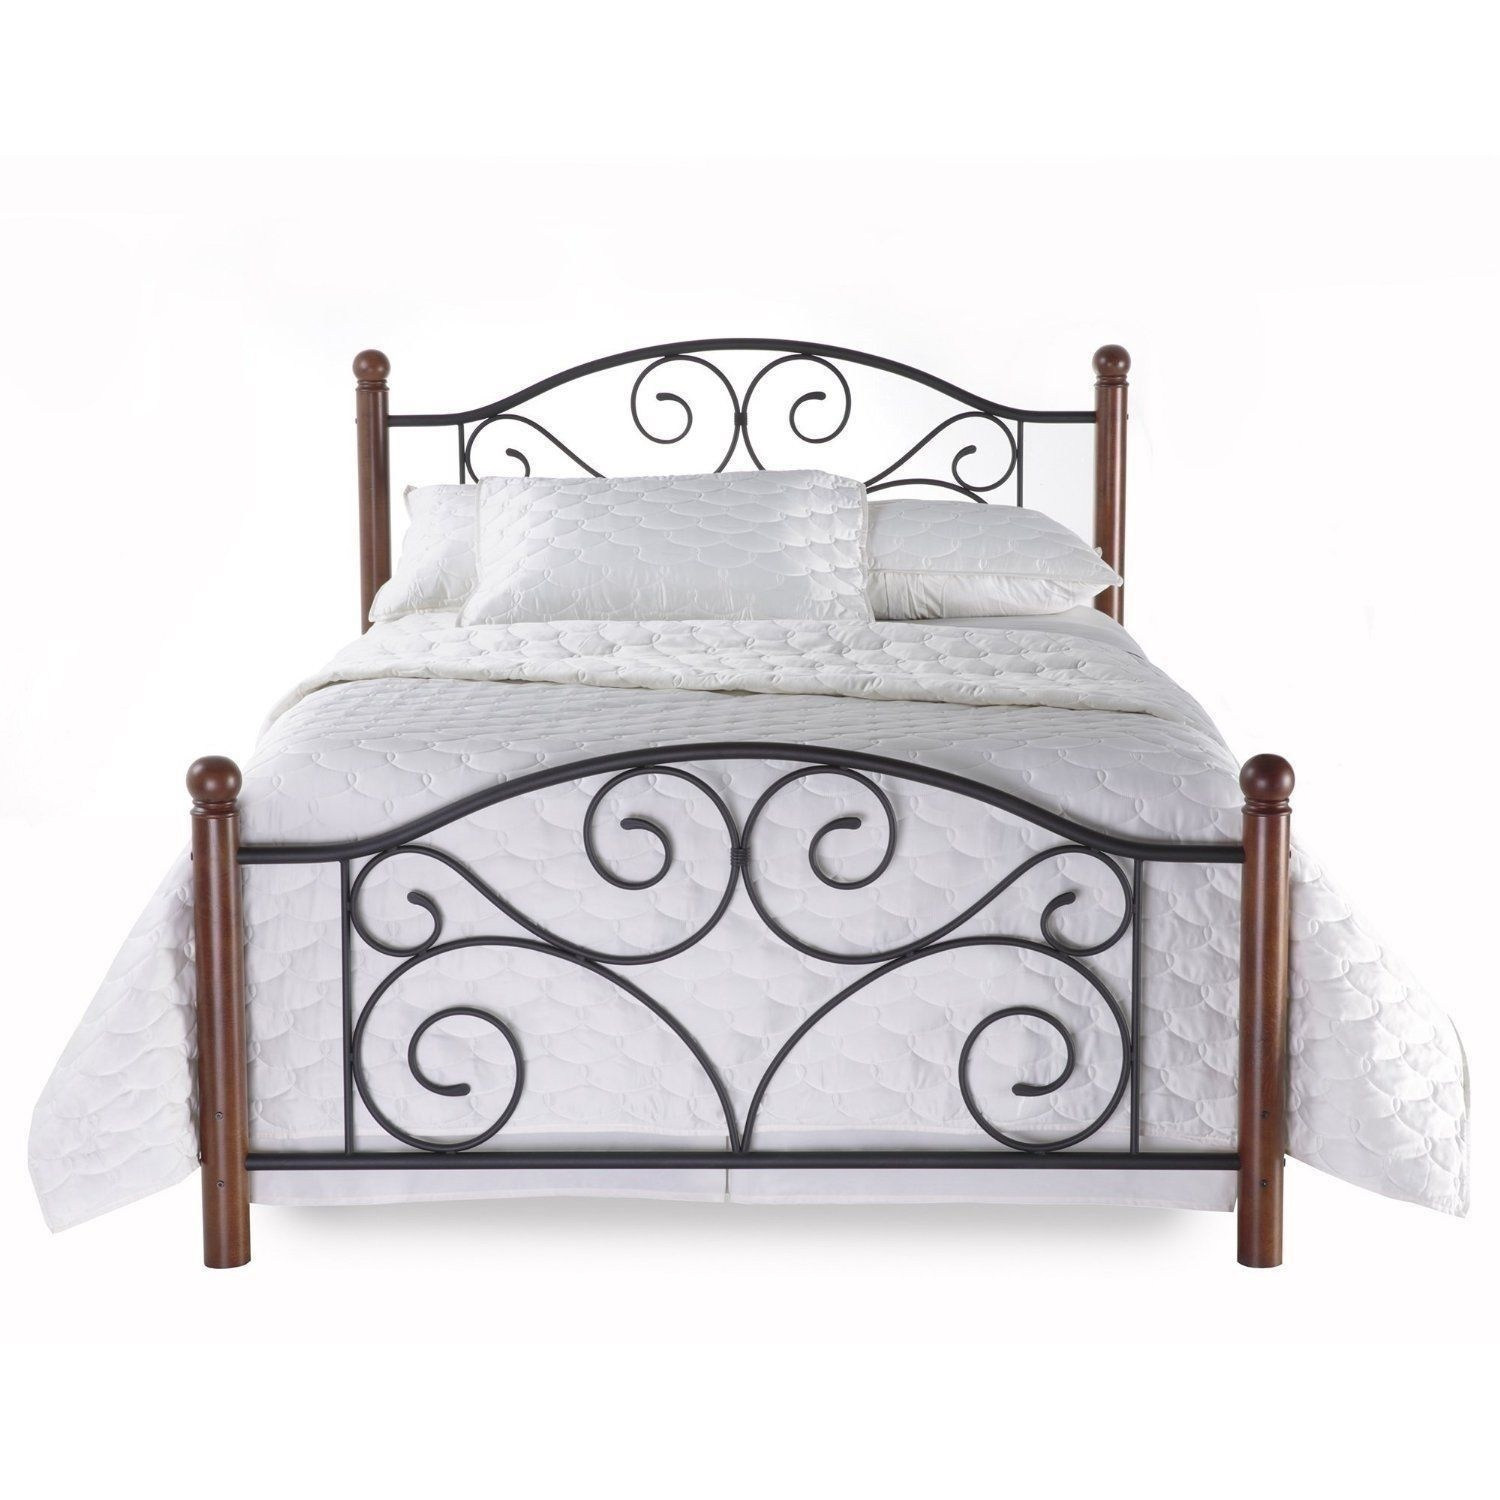 New full queen king size metal wood mattress bed frame for King size footboard